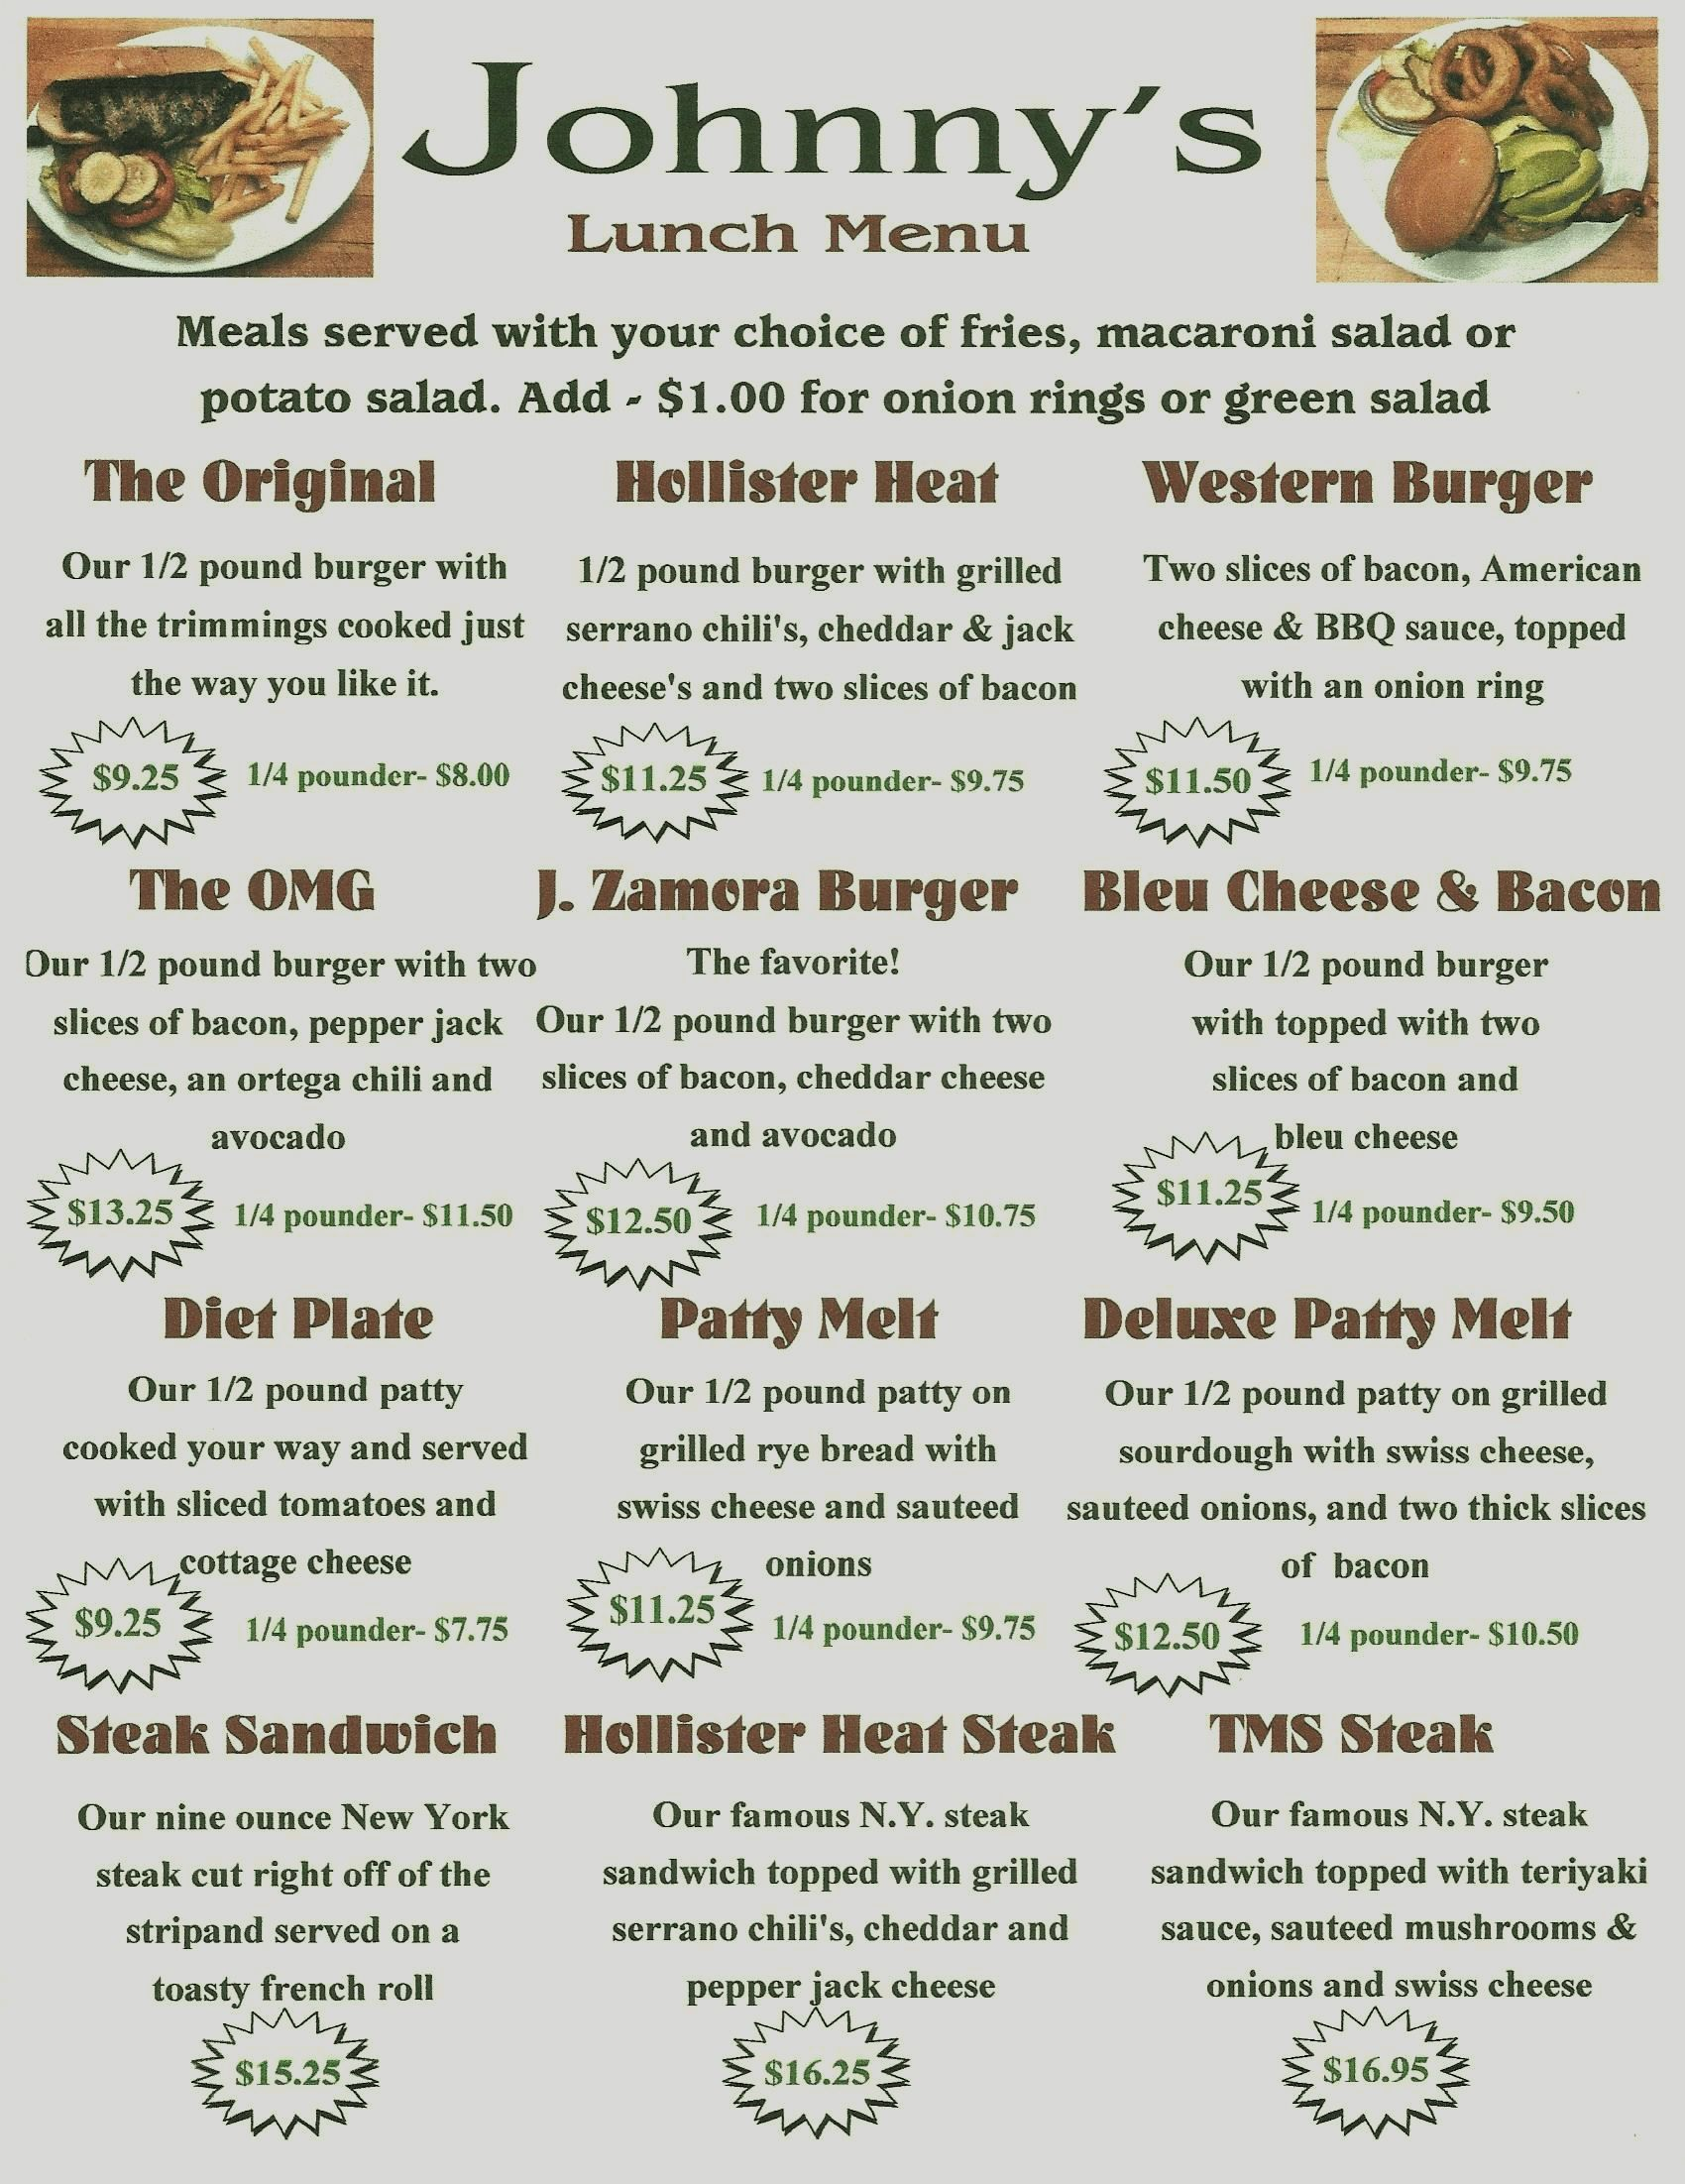 Johnny's Menu - Final Draft copy 3